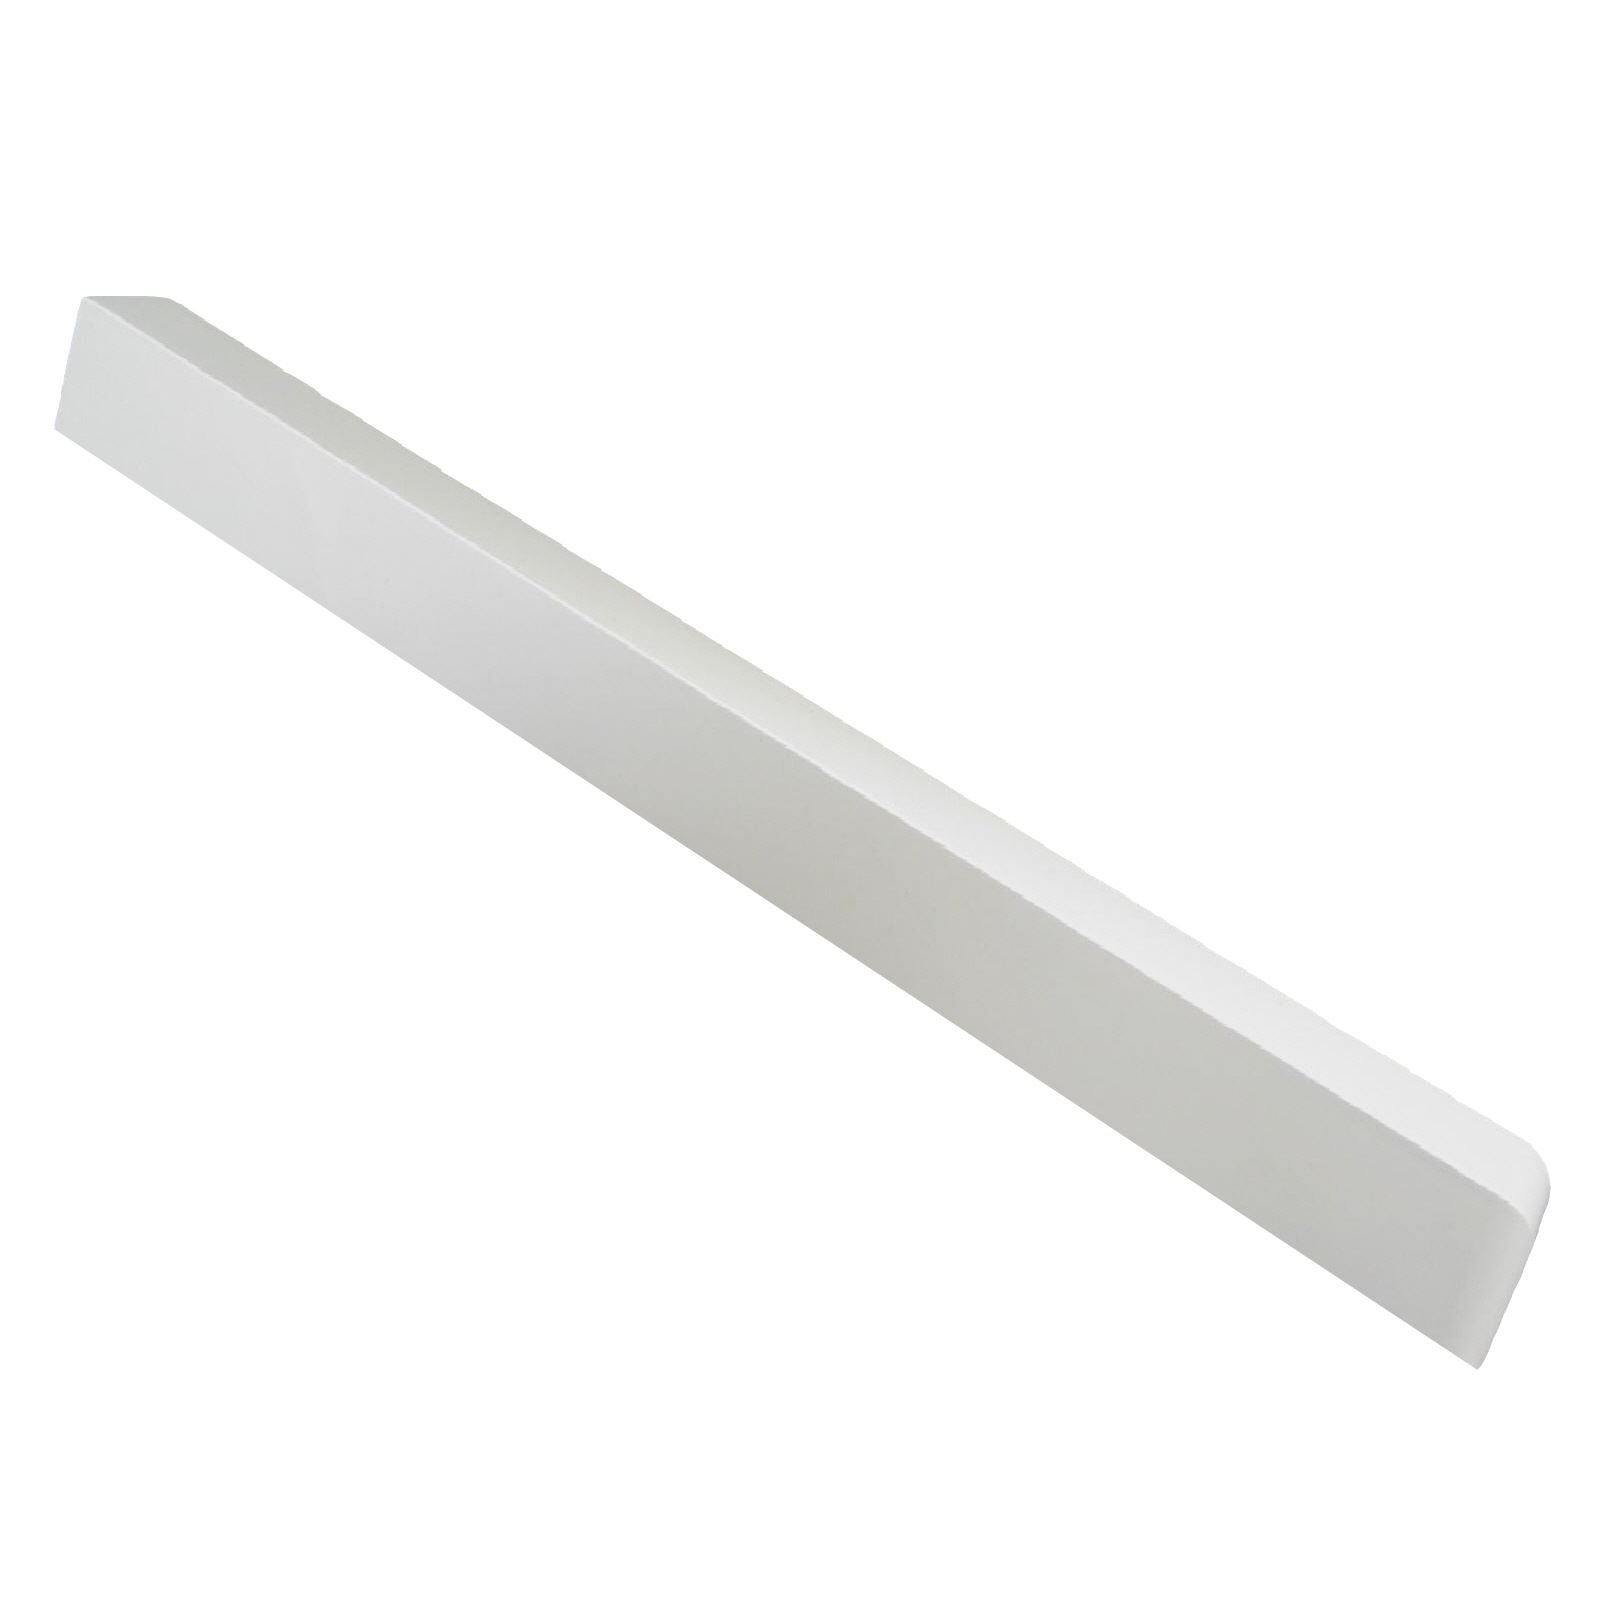 Large Corner Joint Upvc Plastic Fascia Board White 500mm Round Edge by Home Smart